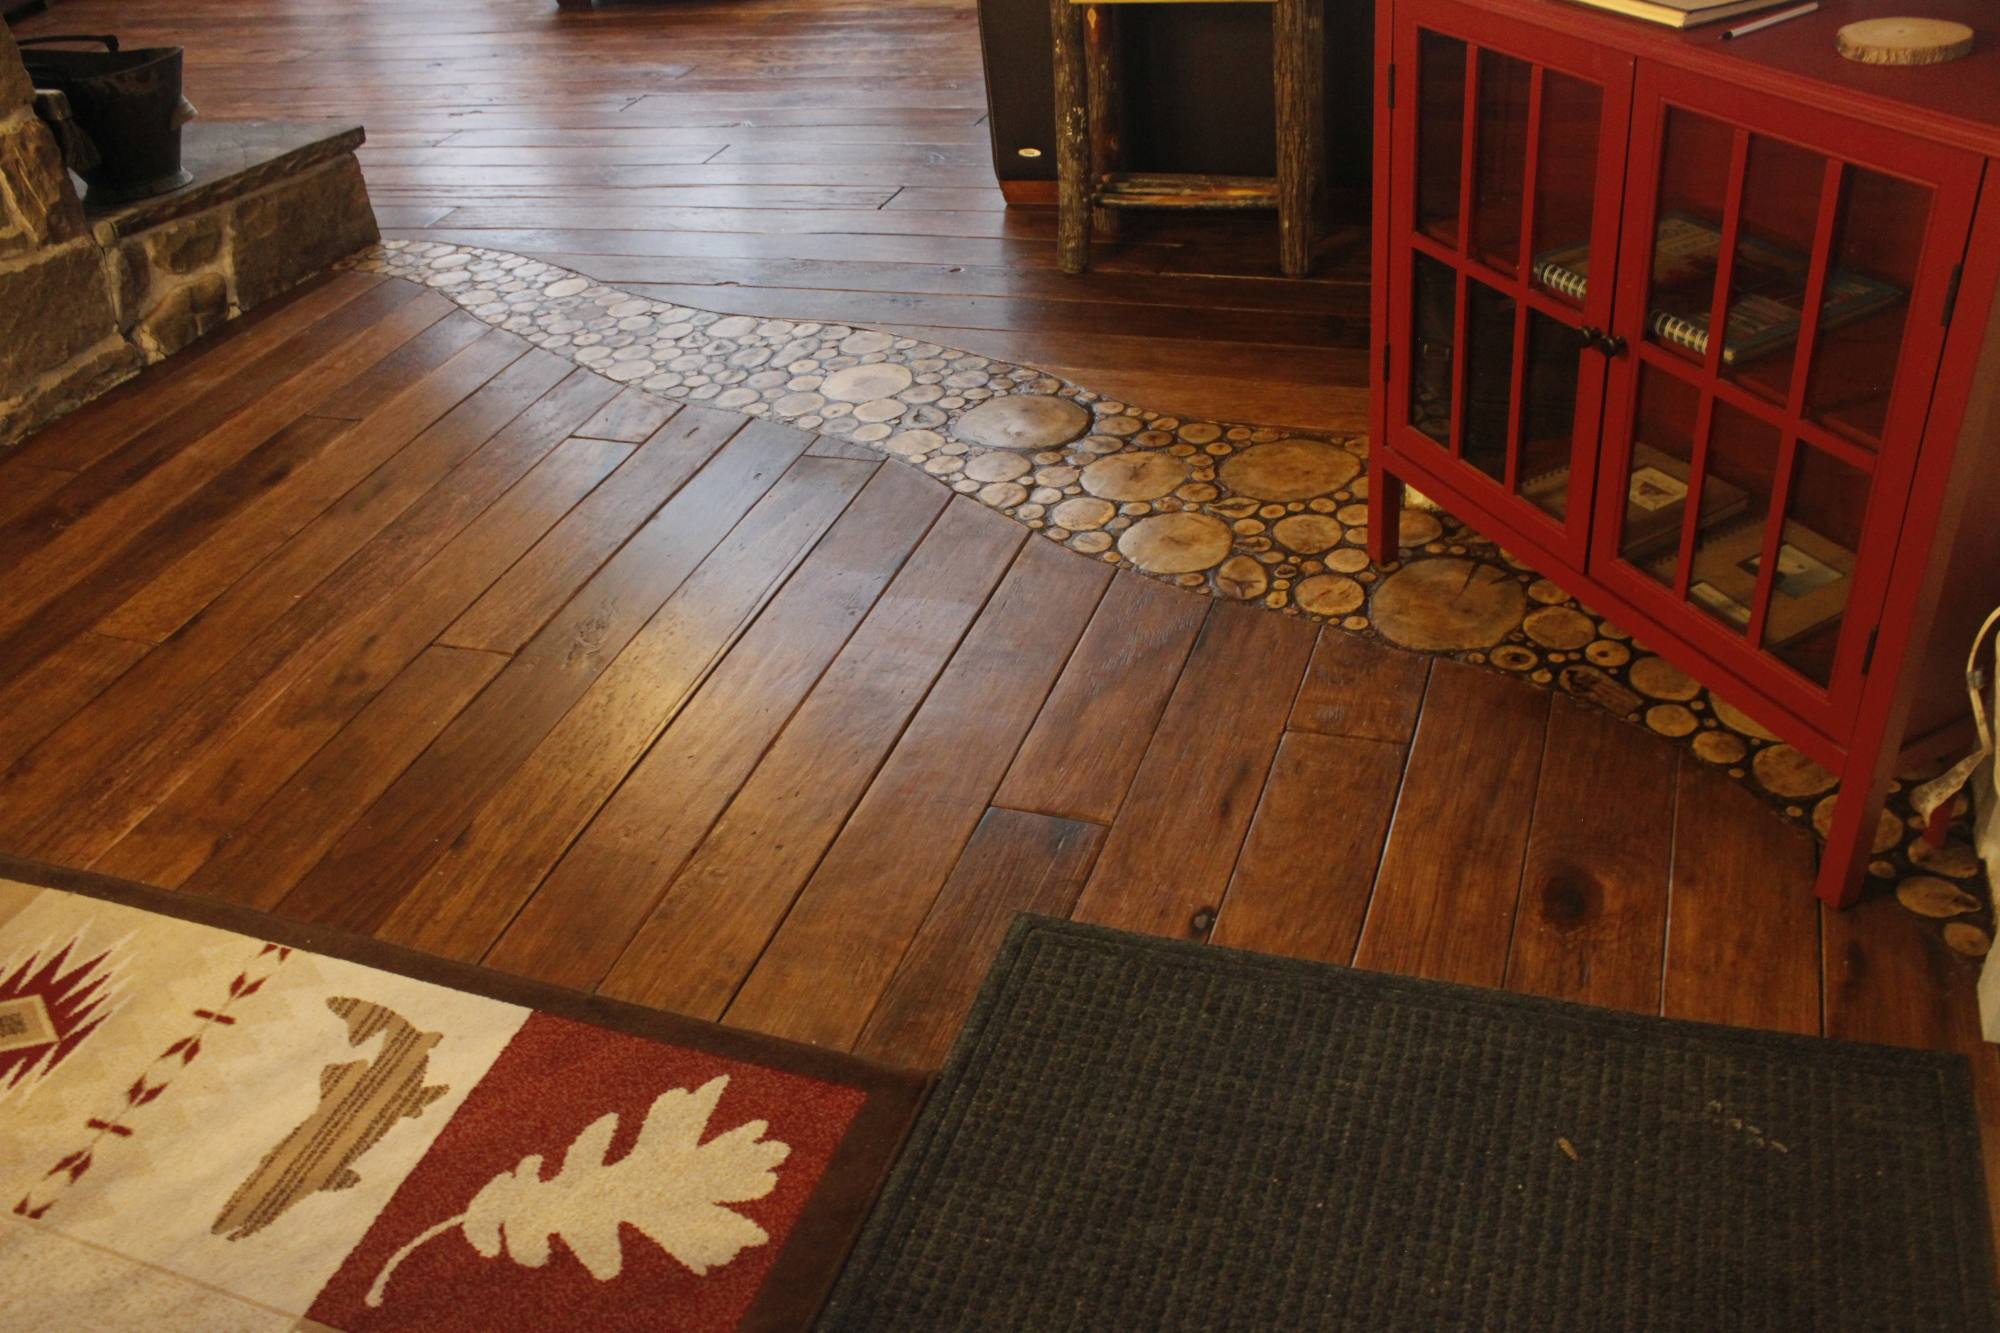 Installing An End Grain Flooring Inlay - Finished - Seen From The Dining Room